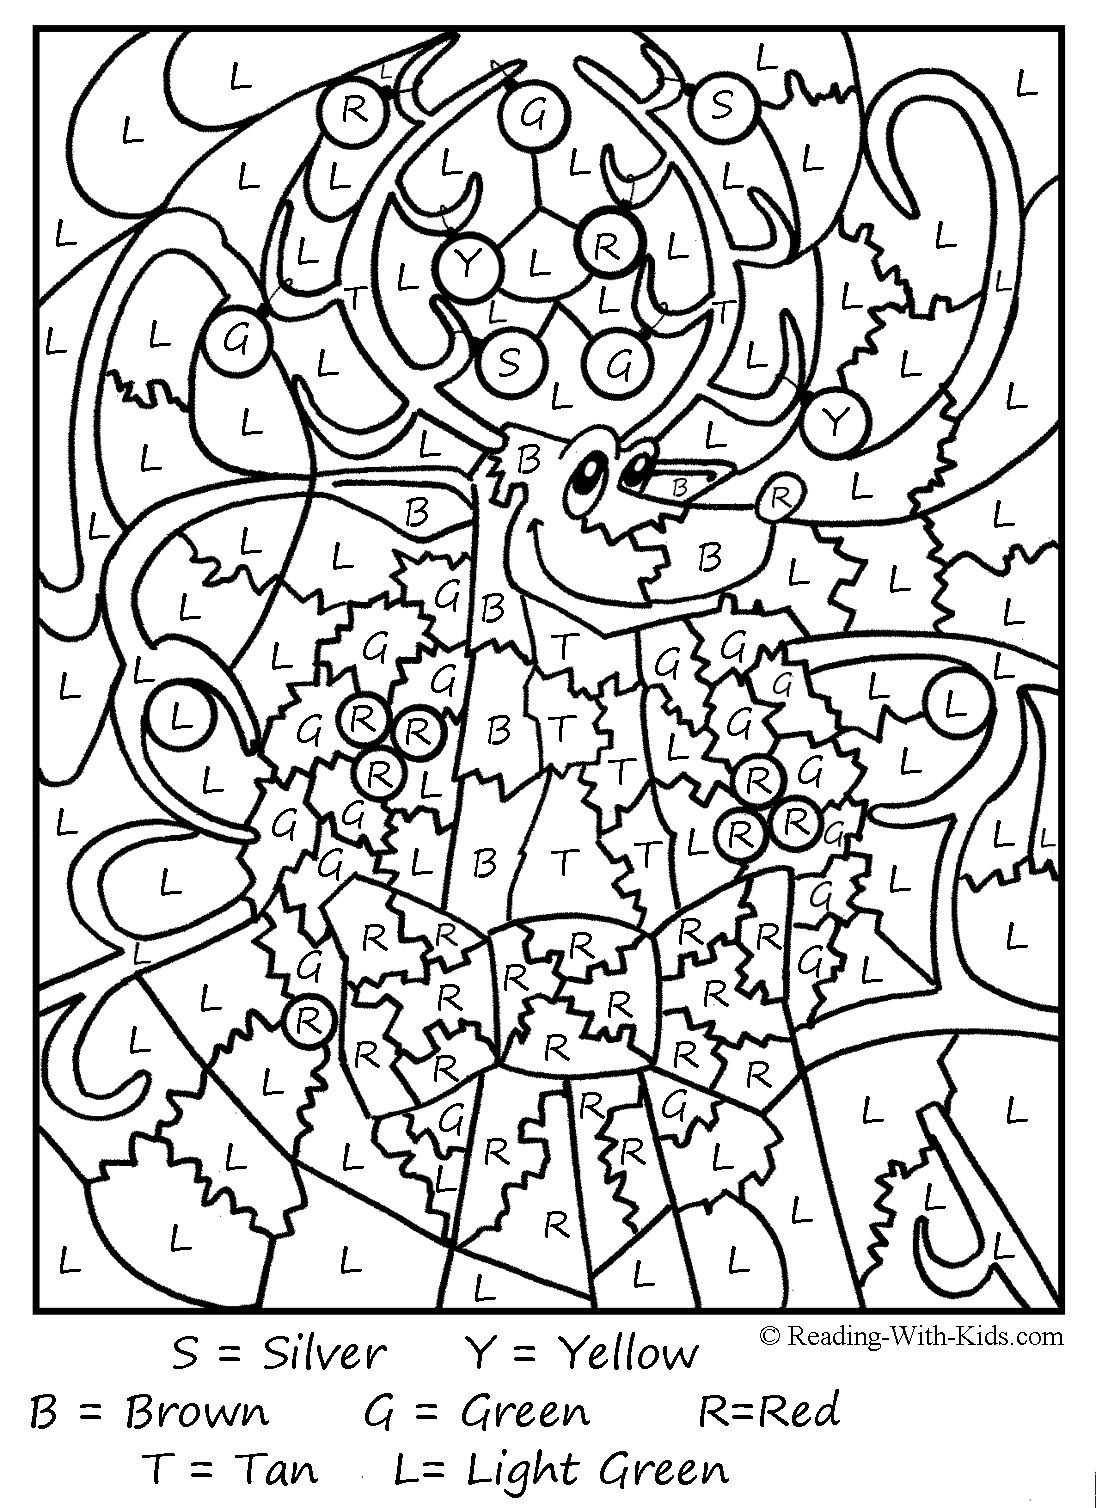 Coloring games in english - Color By Letter And Color By Number Coloring Pages Are Fun And